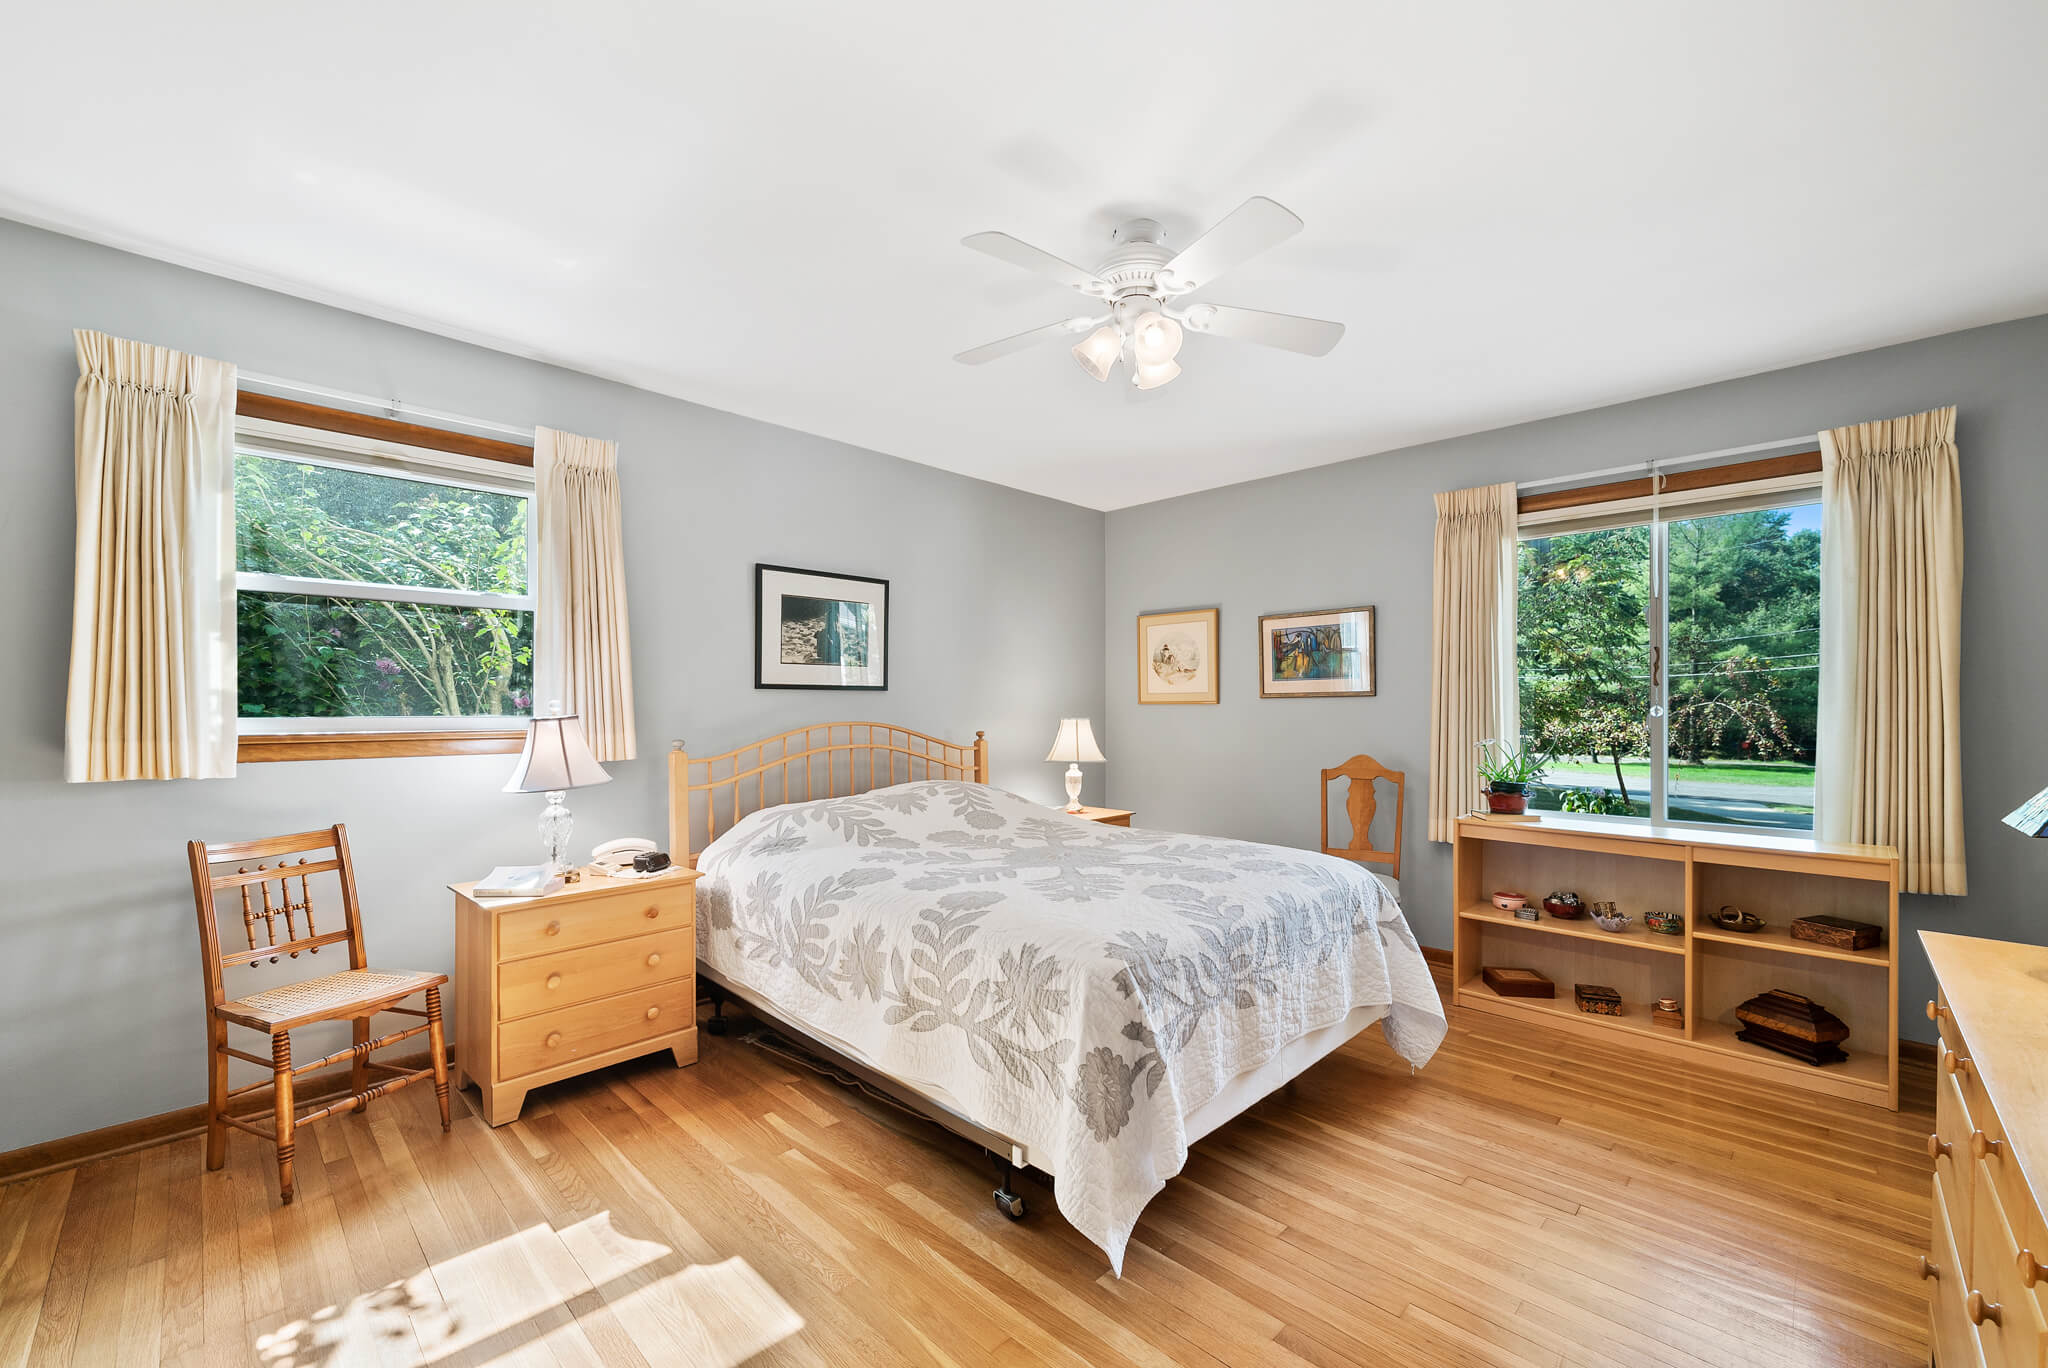 Master bedroom with ensuite bathroom at 4349 Orandale Dr in Chagrin Falls